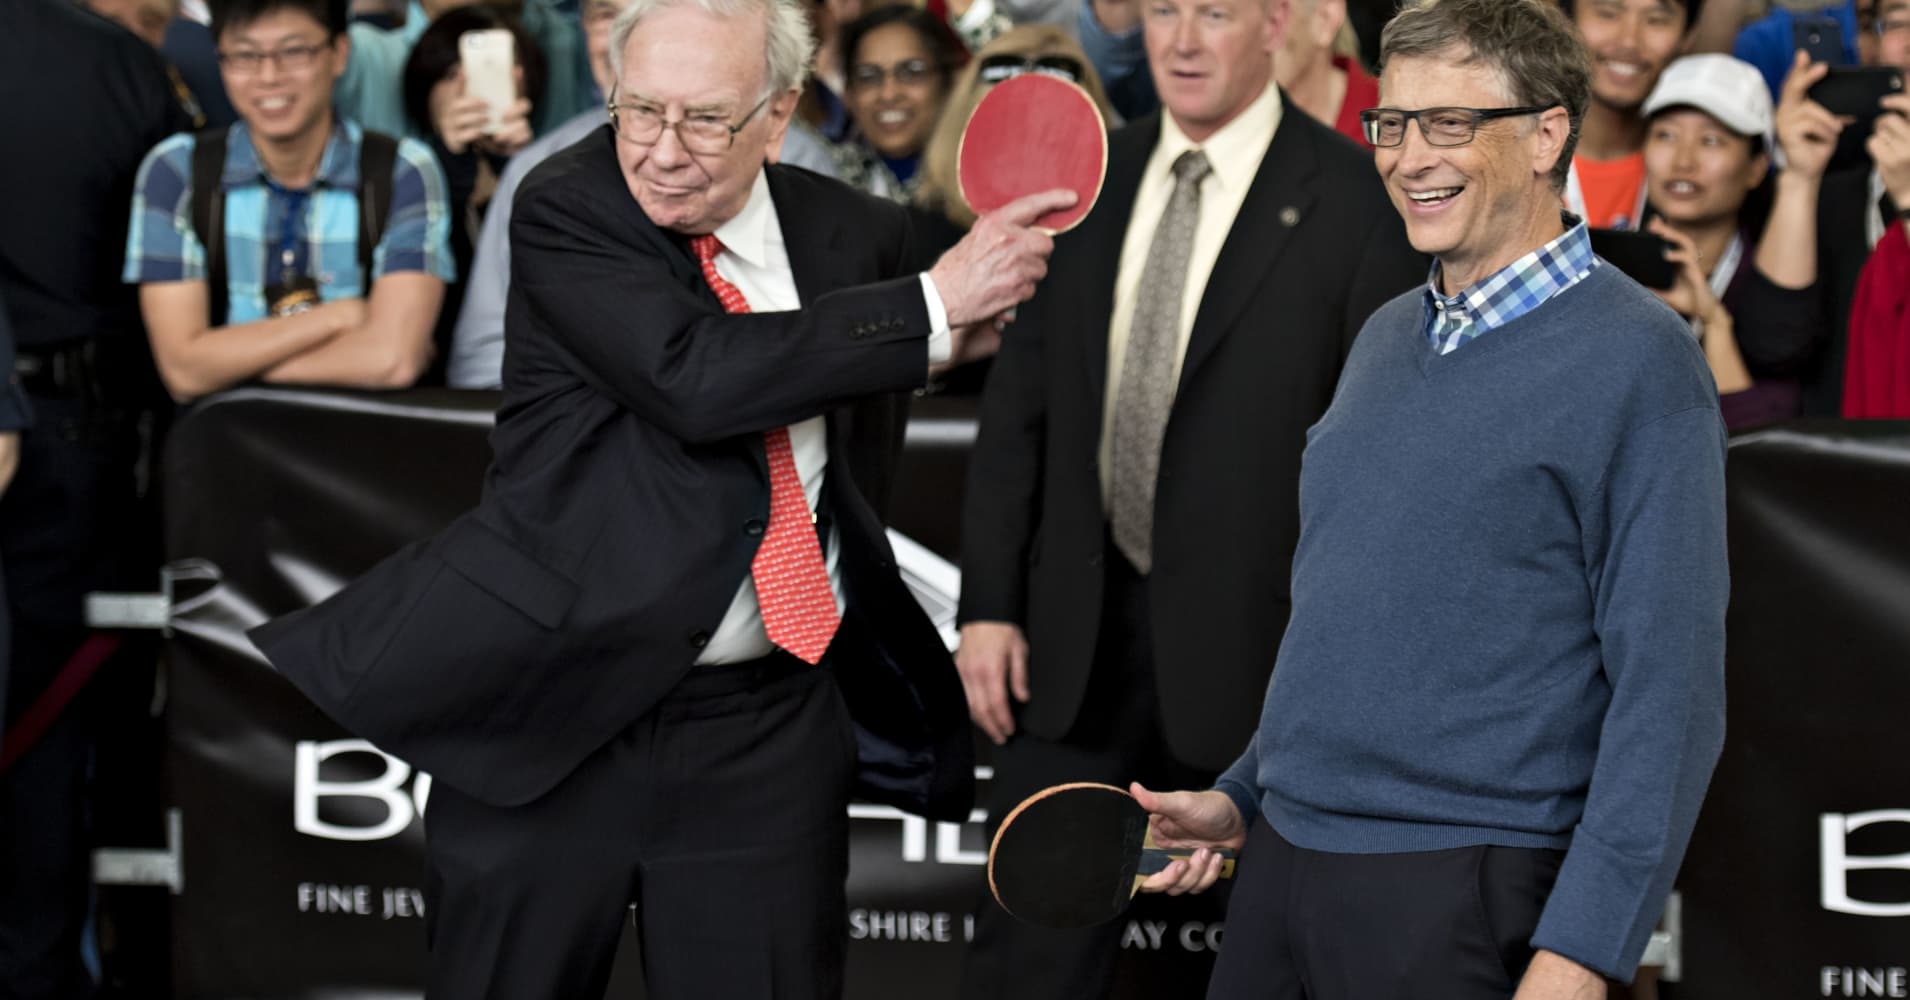 Self-made billionaires Warren Buffett and Bill Gates